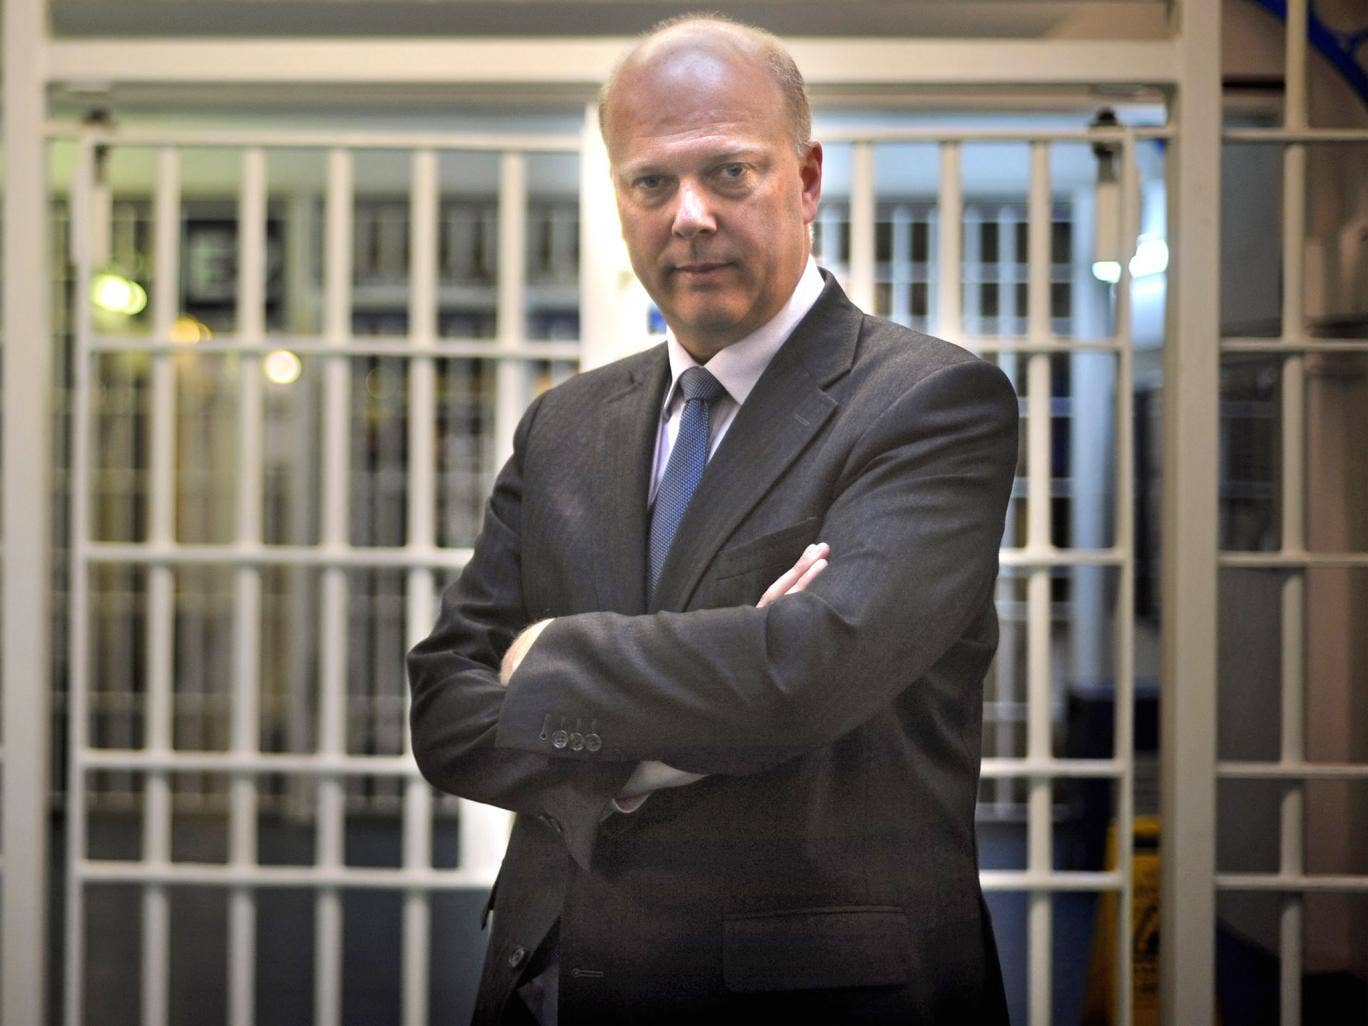 Chris Grayling, Justice Secretary: 'There are pressures which we are facing but there is not a crisis'